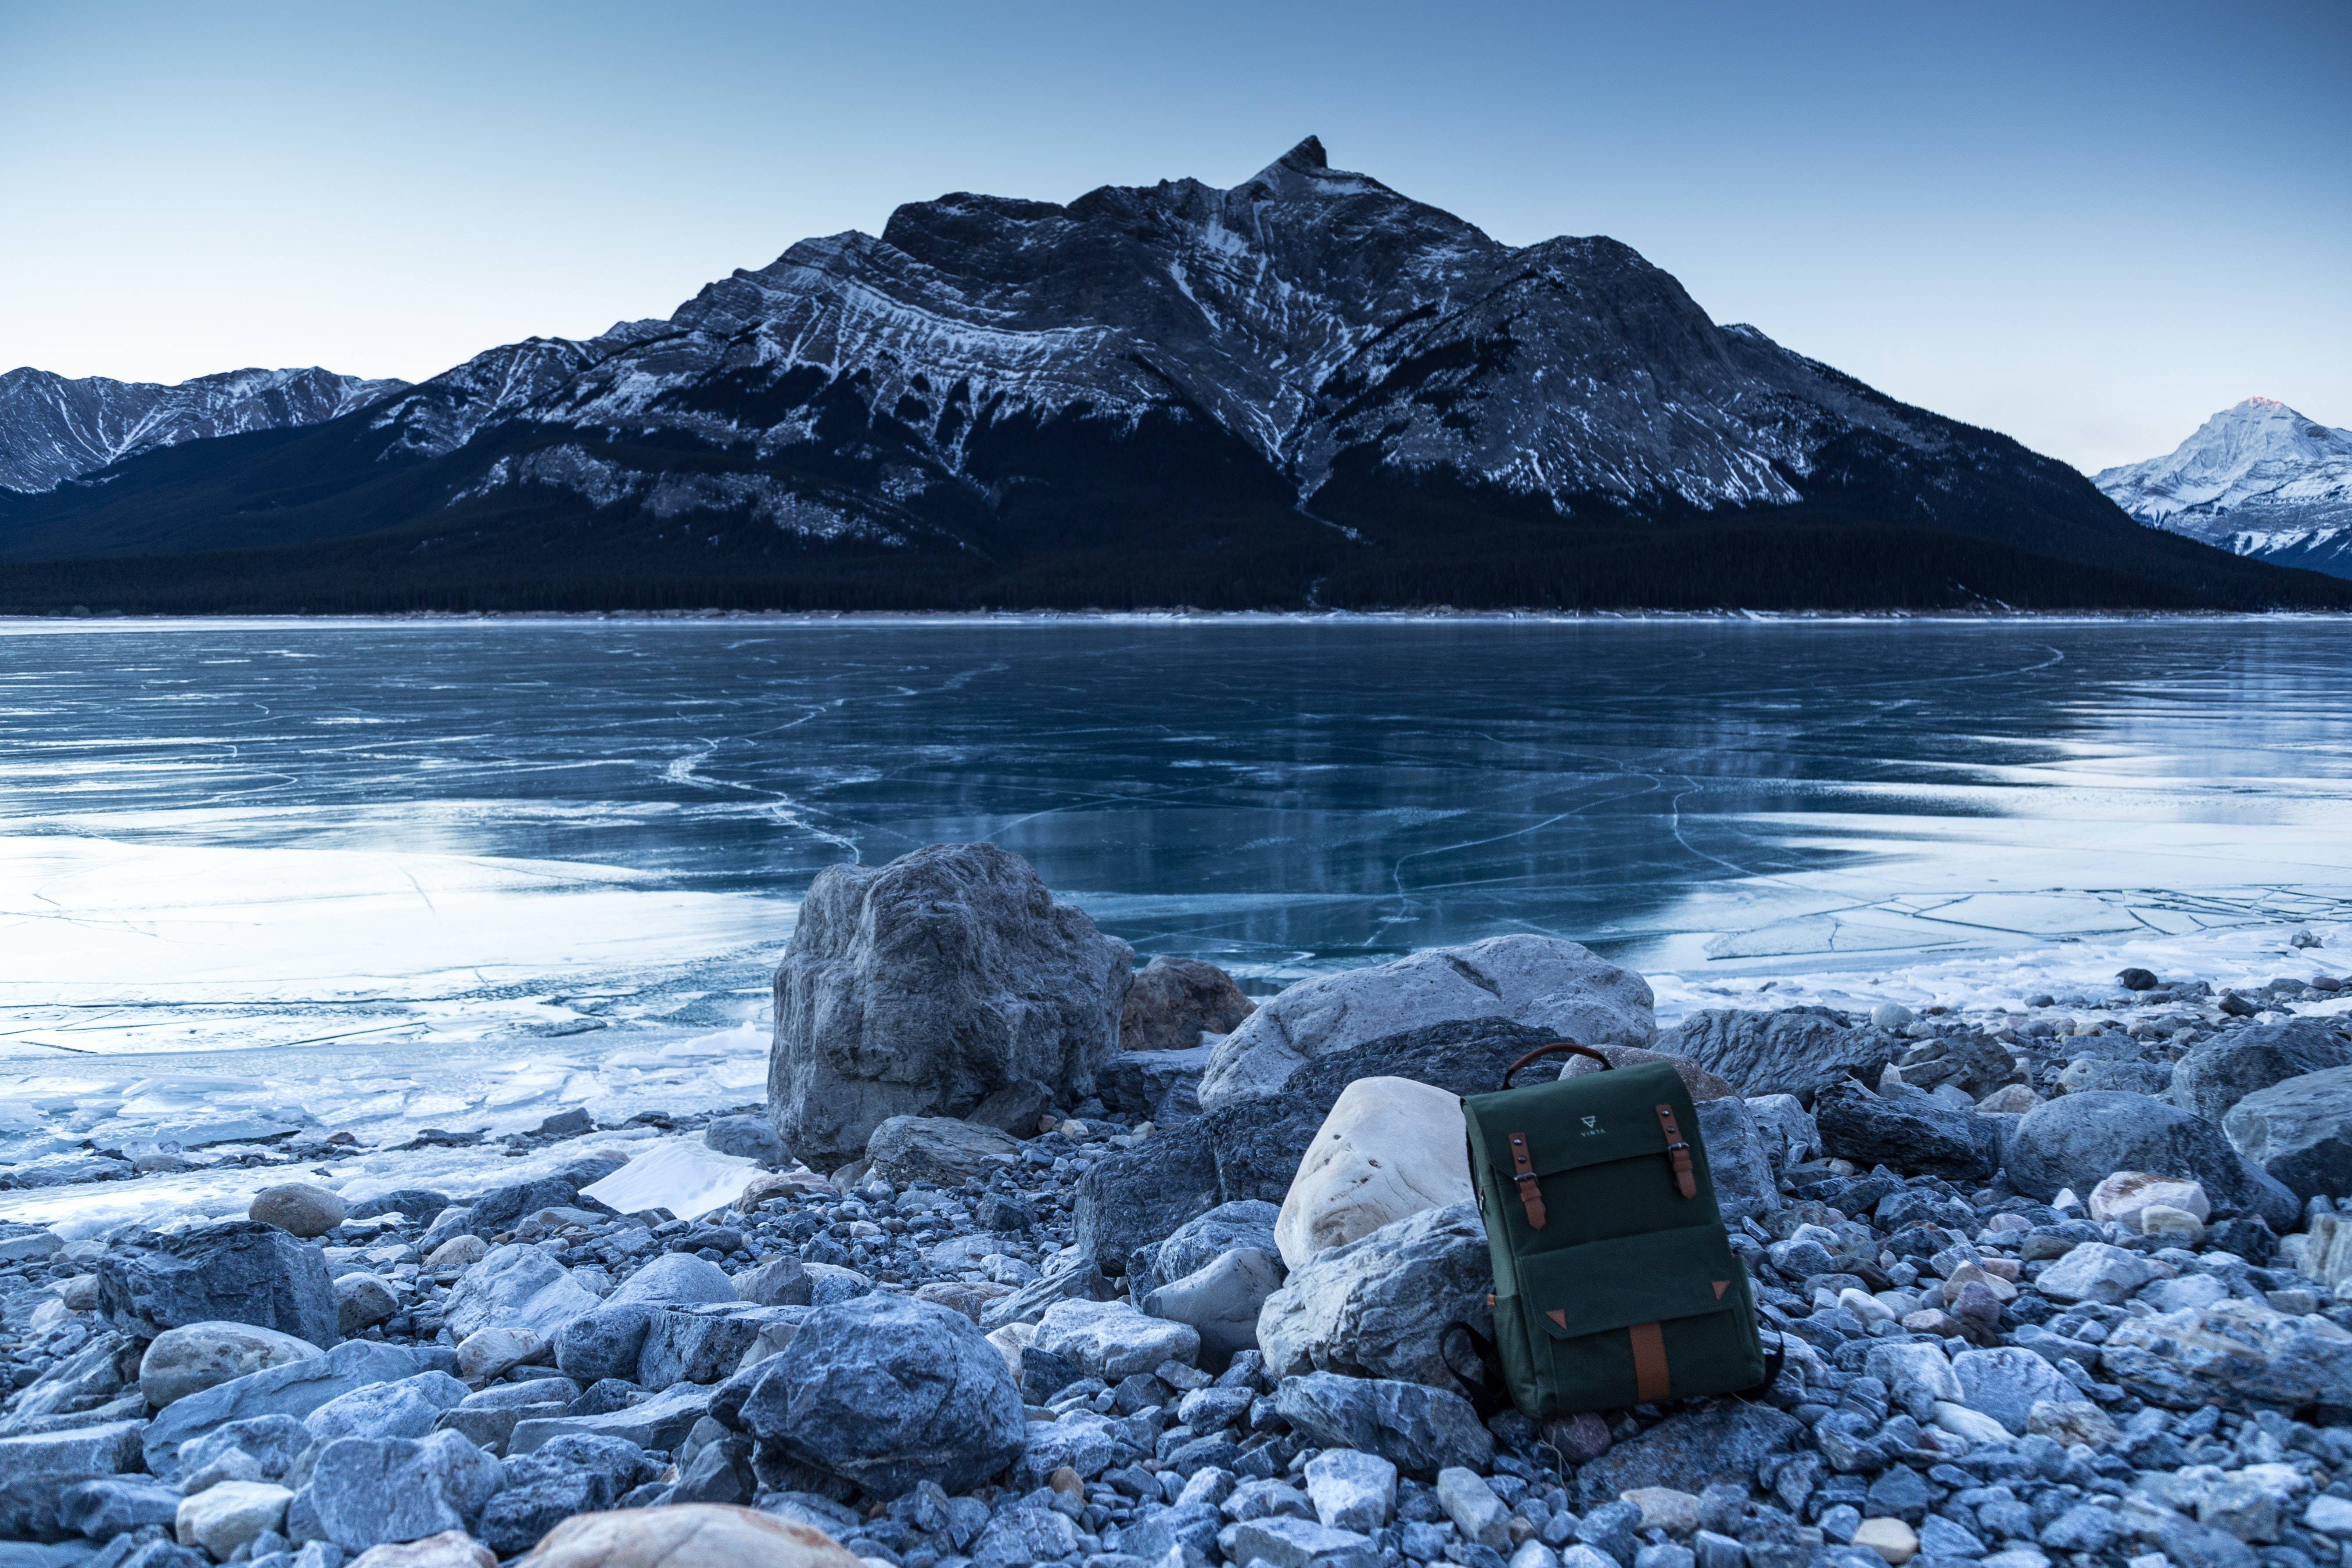 green and brown backpack leaning on stone near body of water